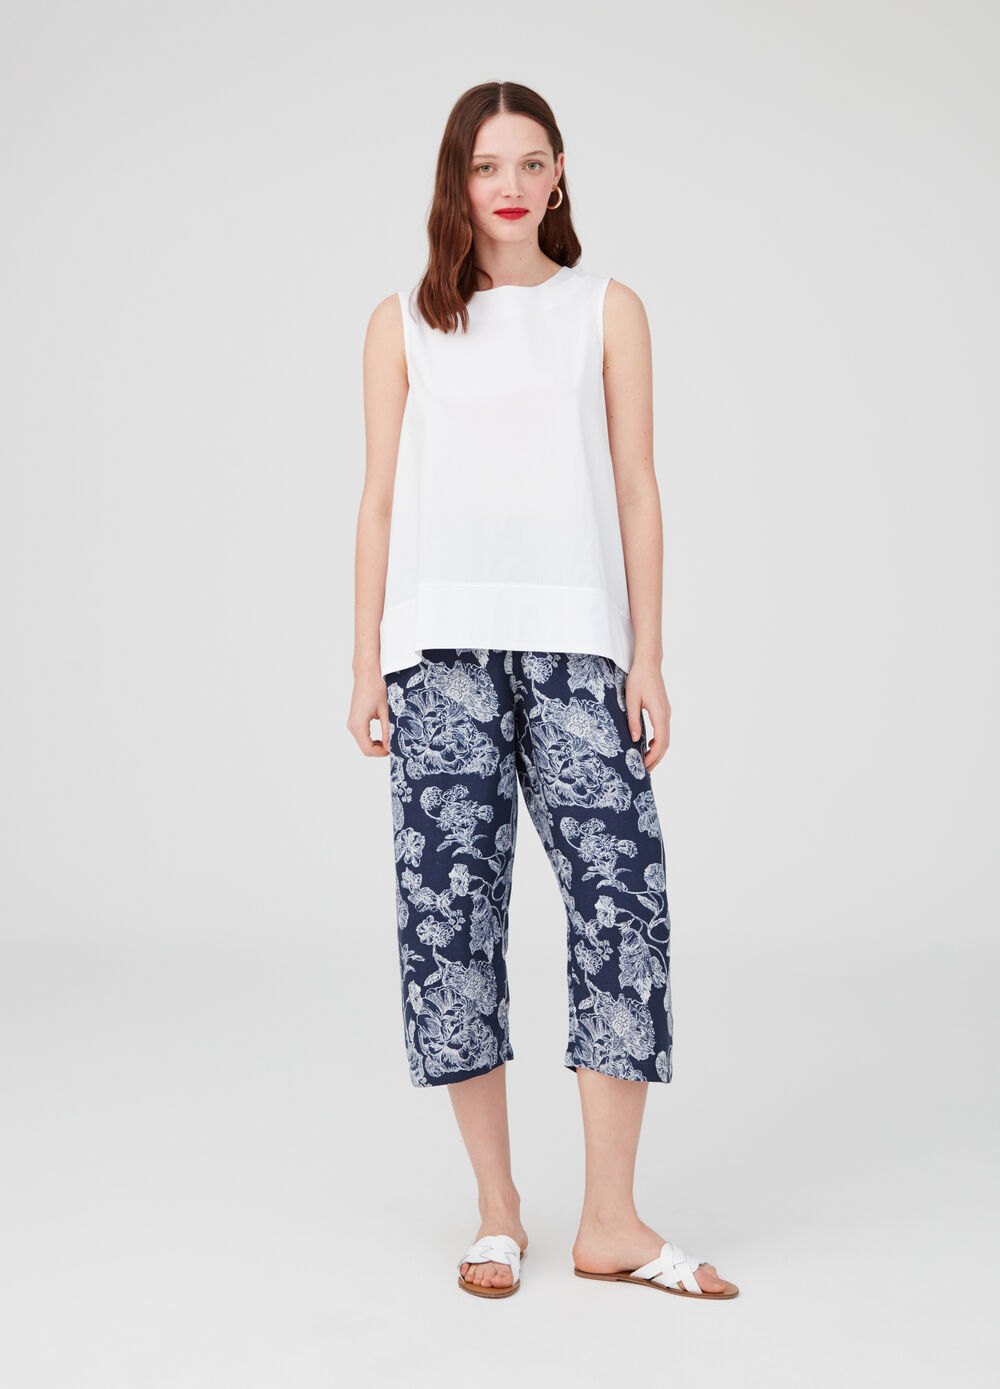 Culotte trousers with elastic waistband and pattern